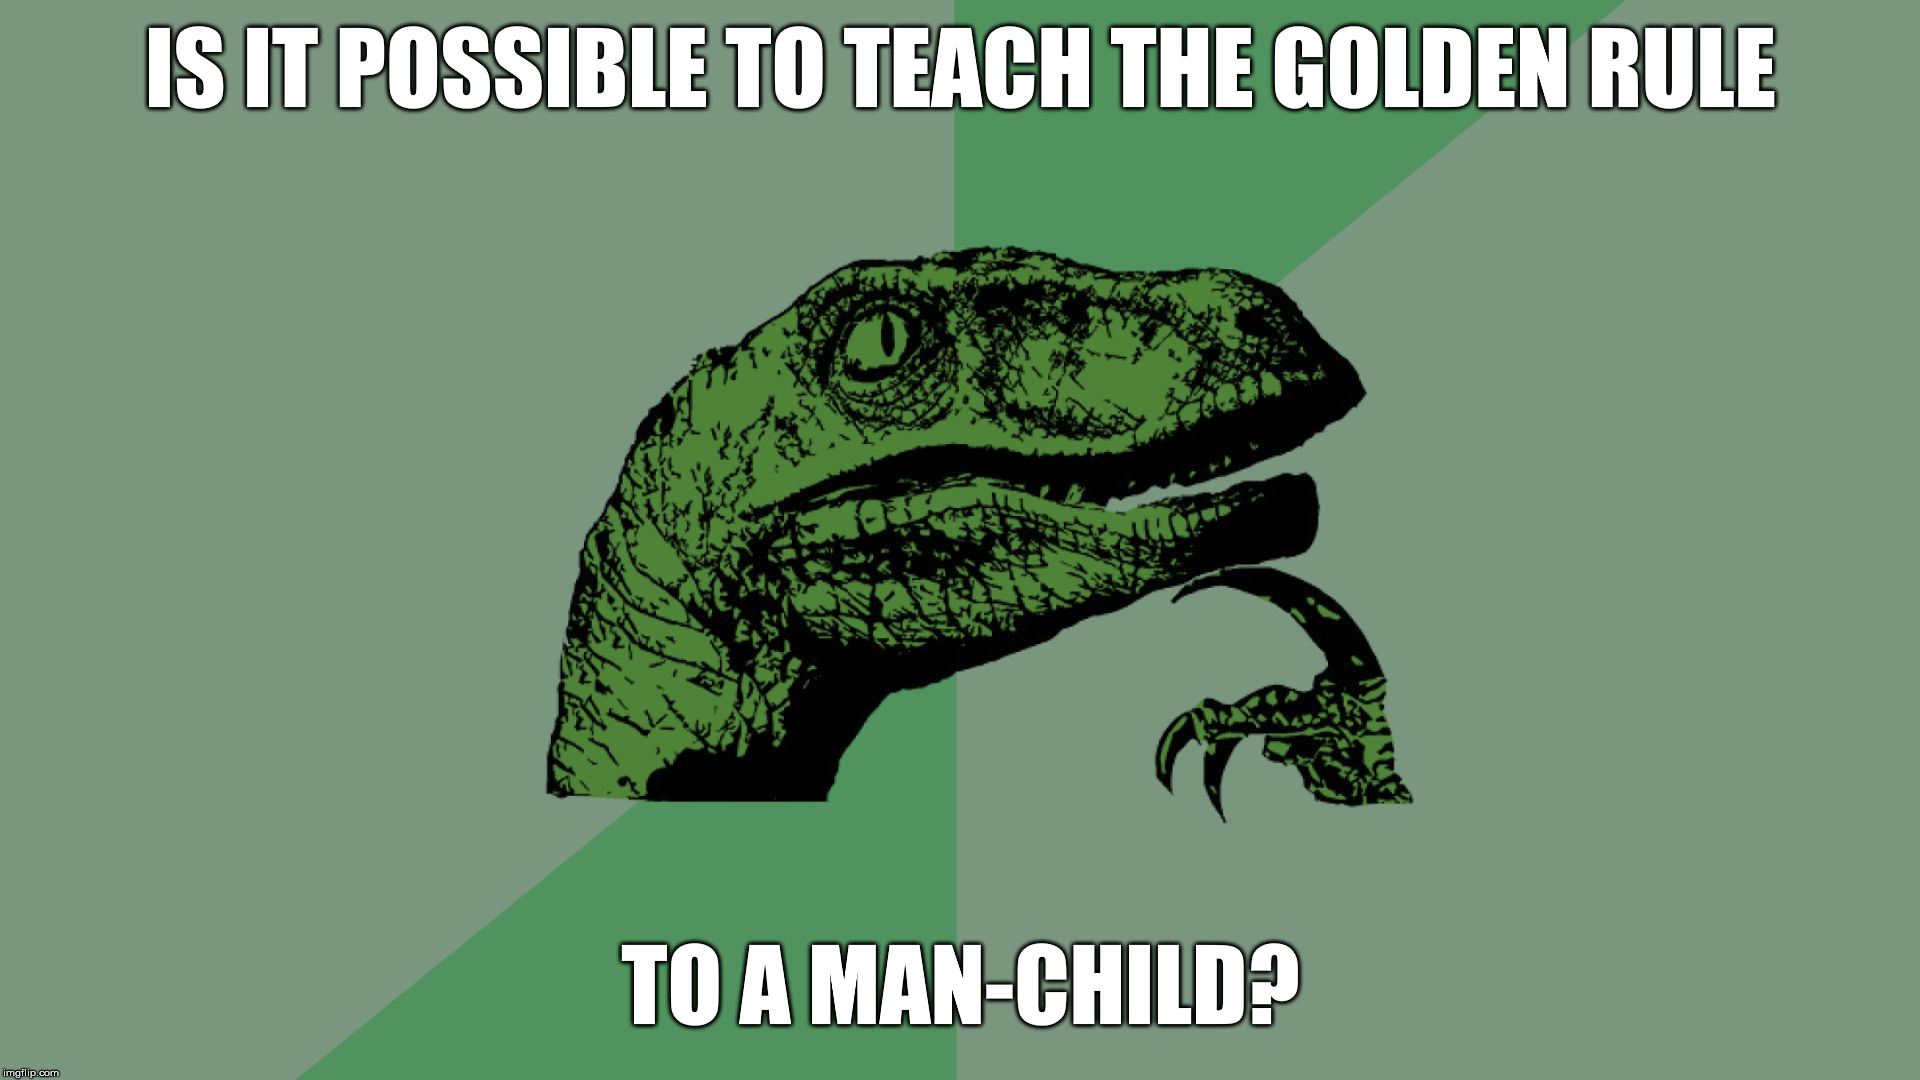 Philosophy Dinosaur | IS IT POSSIBLE TO TEACH THE GOLDEN RULE TO A MAN-CHILD? | image tagged in philosophy dinosaur,the golden rule,man child,immature | made w/ Imgflip meme maker